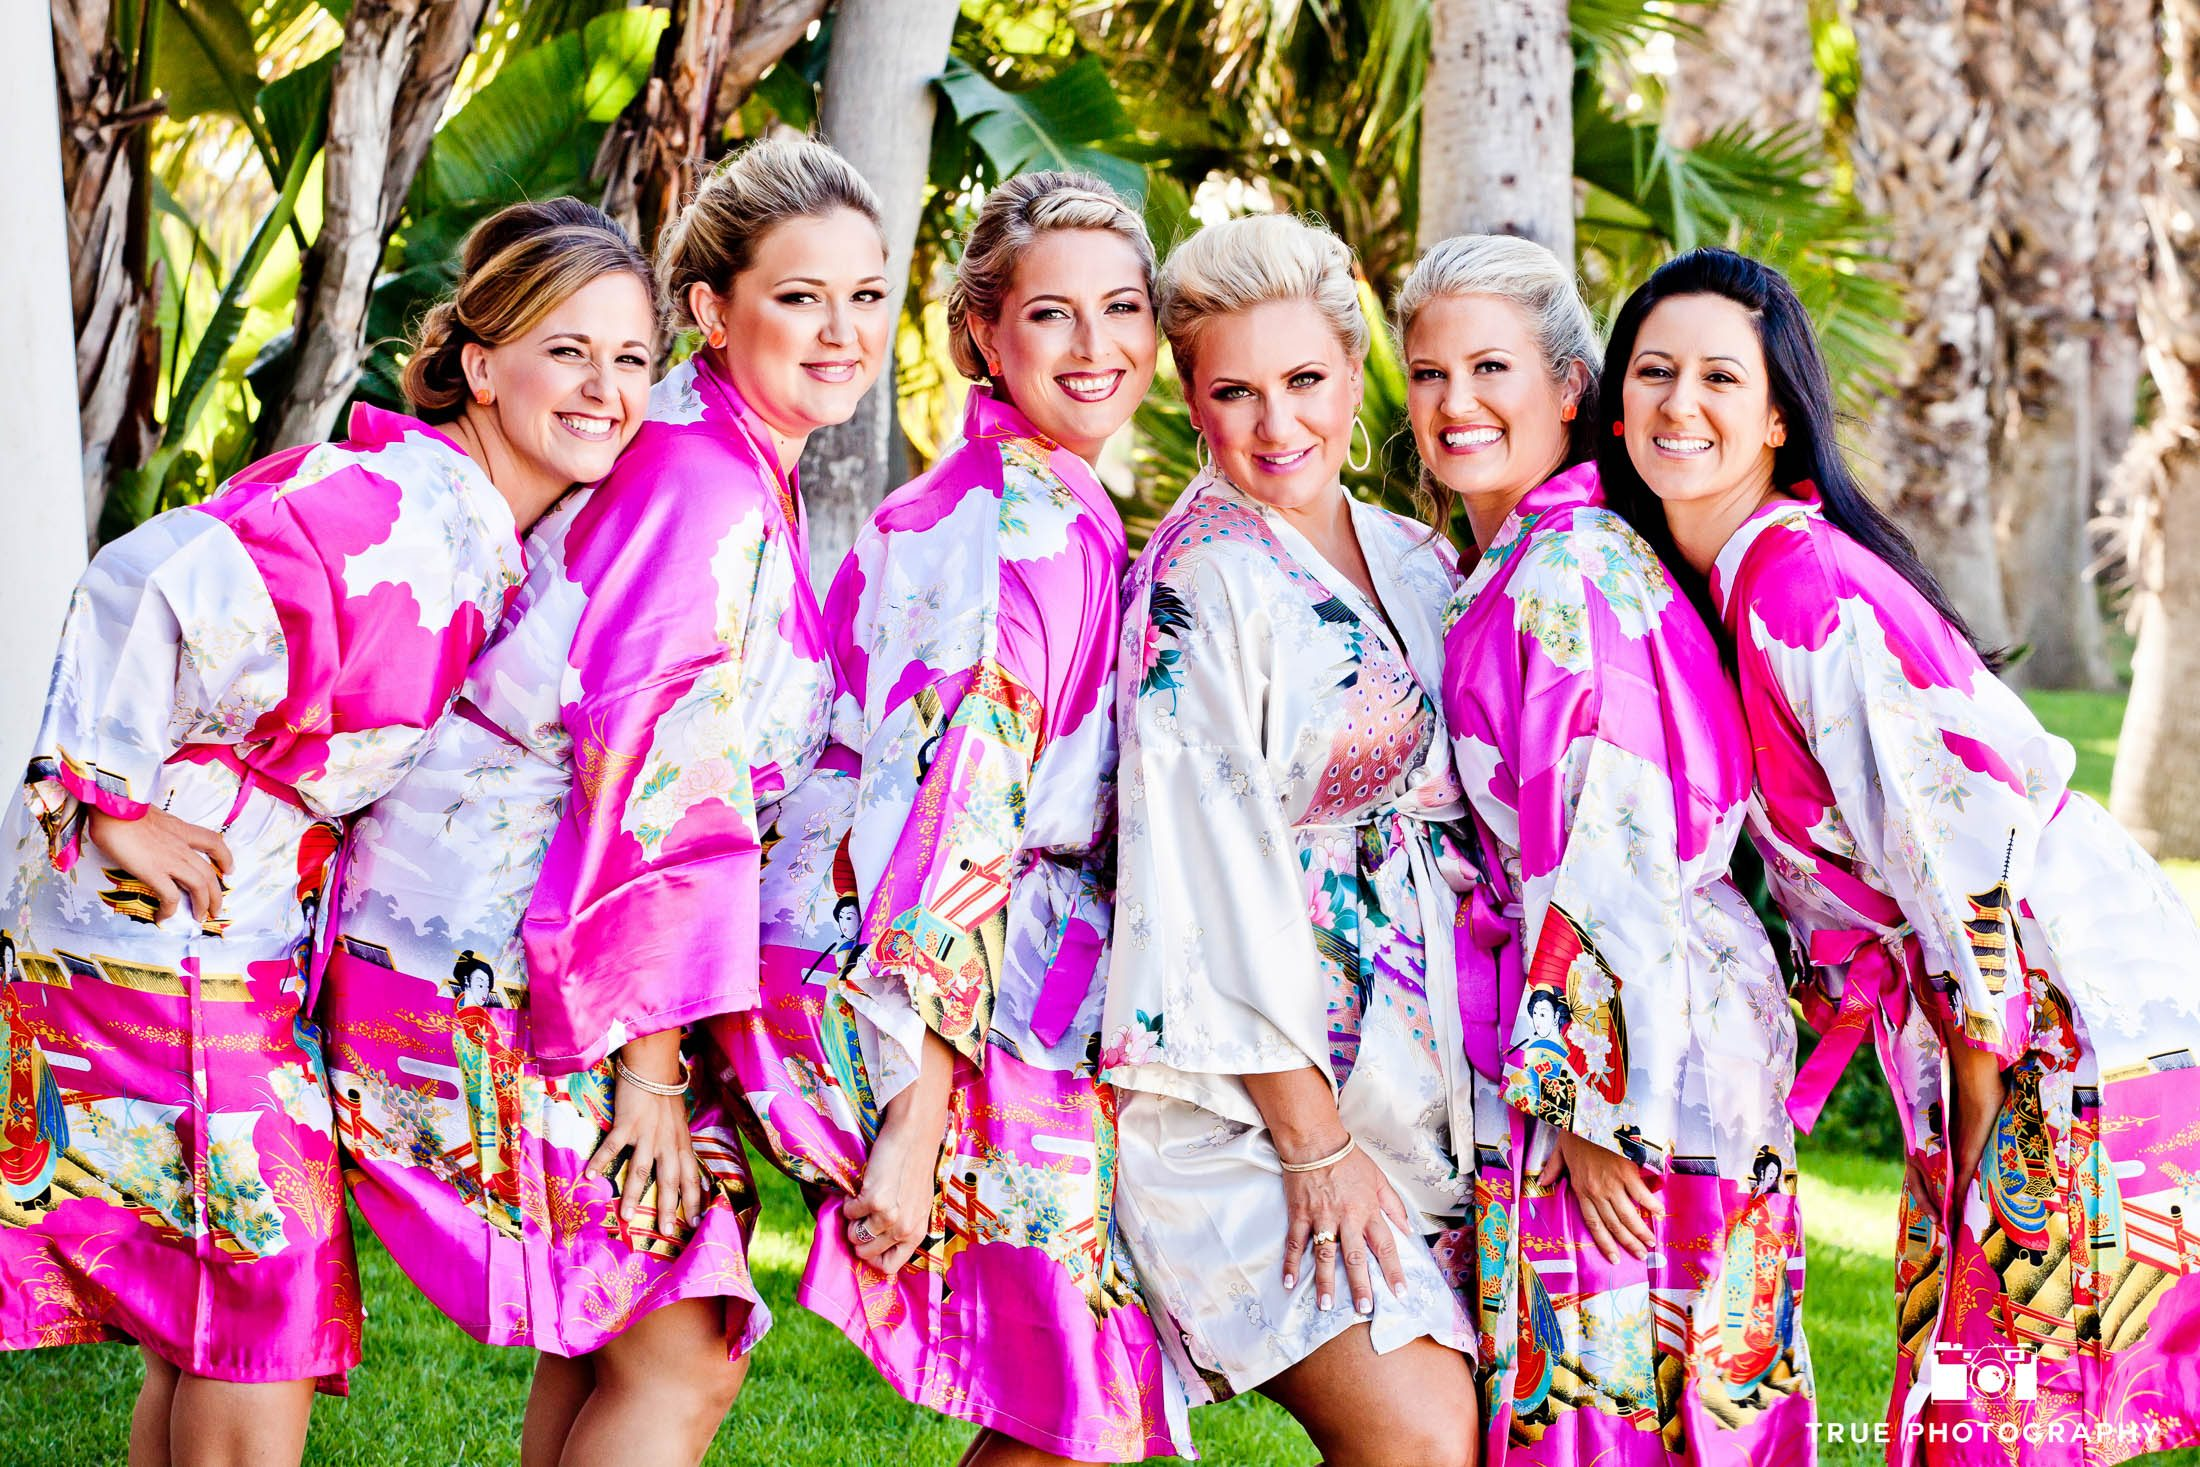 Bride and bridesmaids pose with pink robes before wedding ceremony